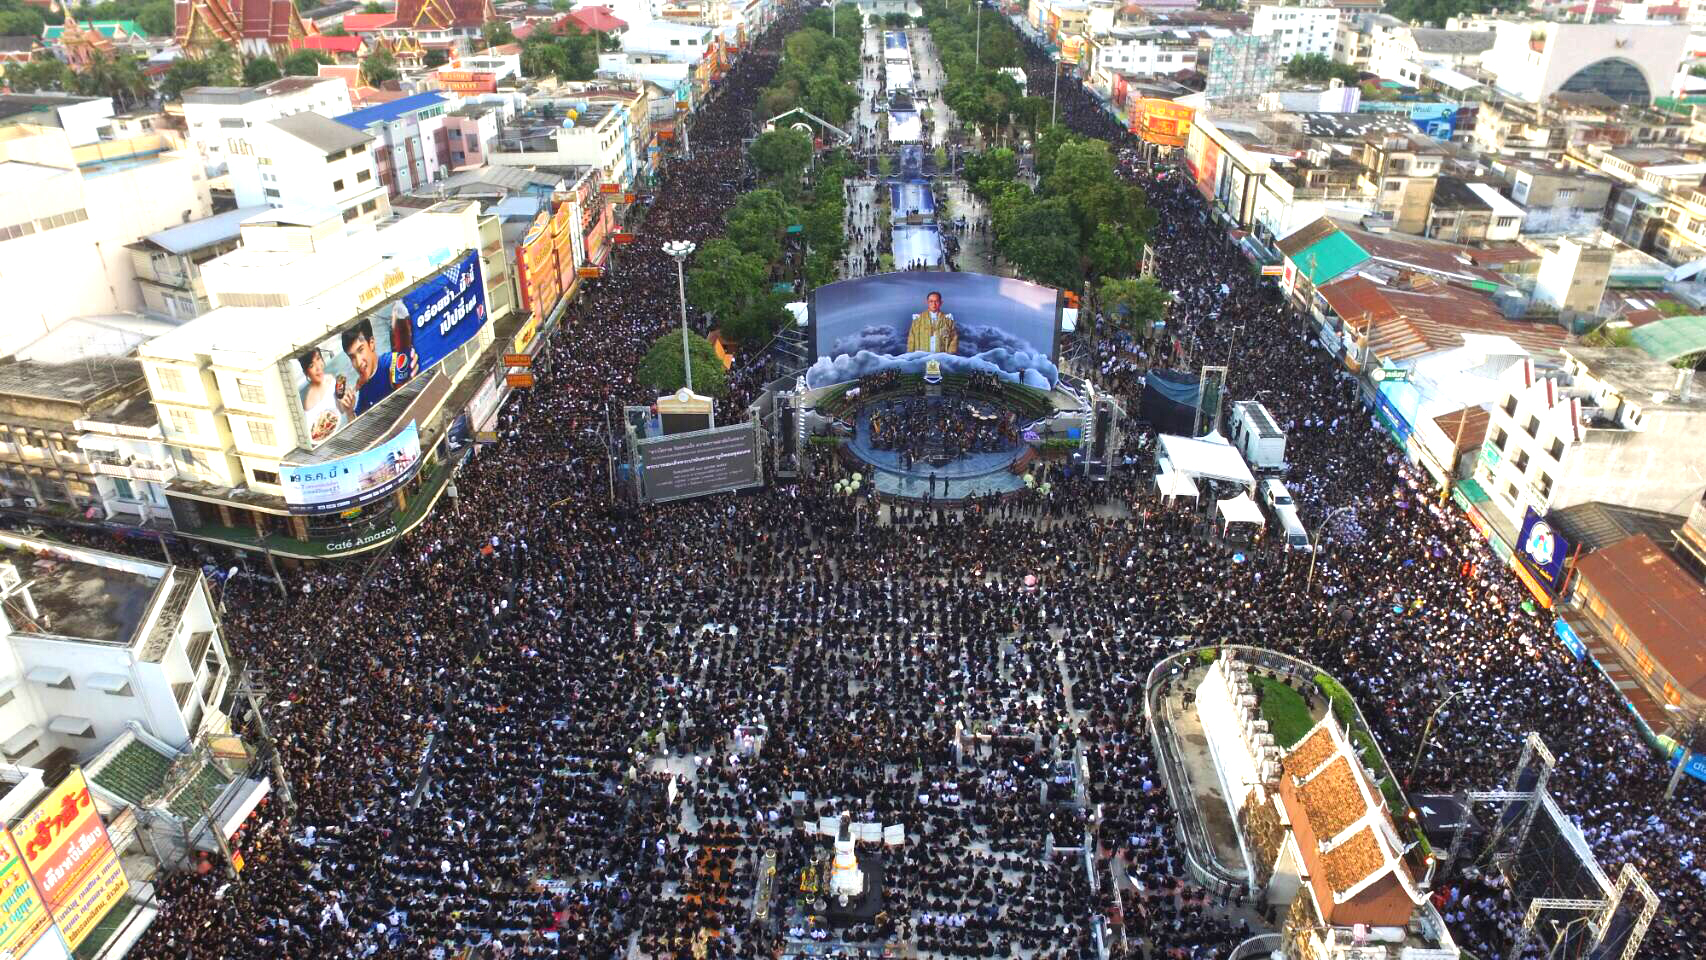 Tens of thousands of people gather at the square in front of the Thao Suranari Monument in Nakhon Ratchasima to mourn the passing of His Majesty the late King Bhumibol Adulyadej, October 2016